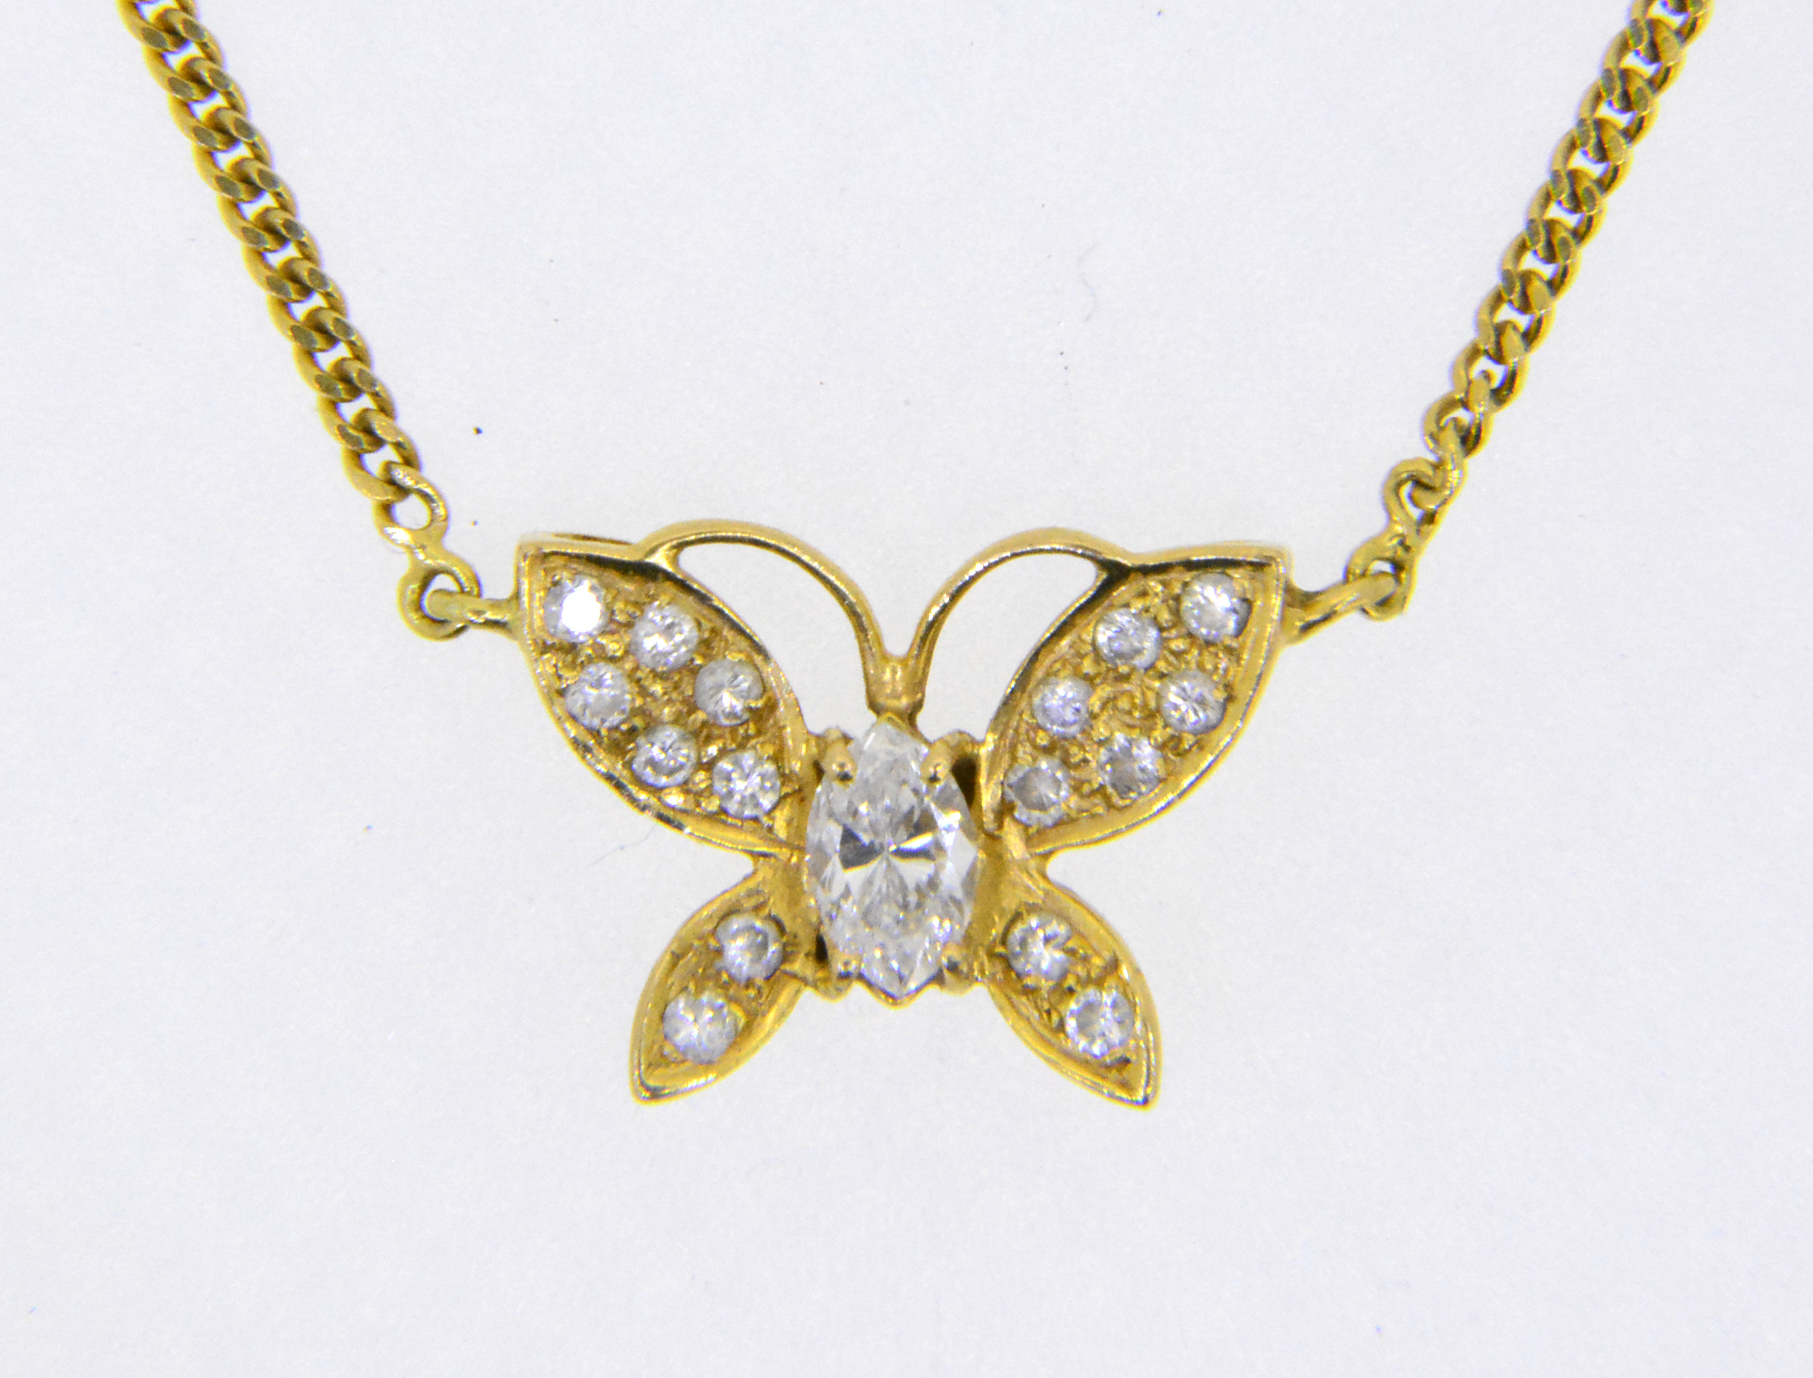 Diamond Butterfly Pendant Necklace Jethro Marles